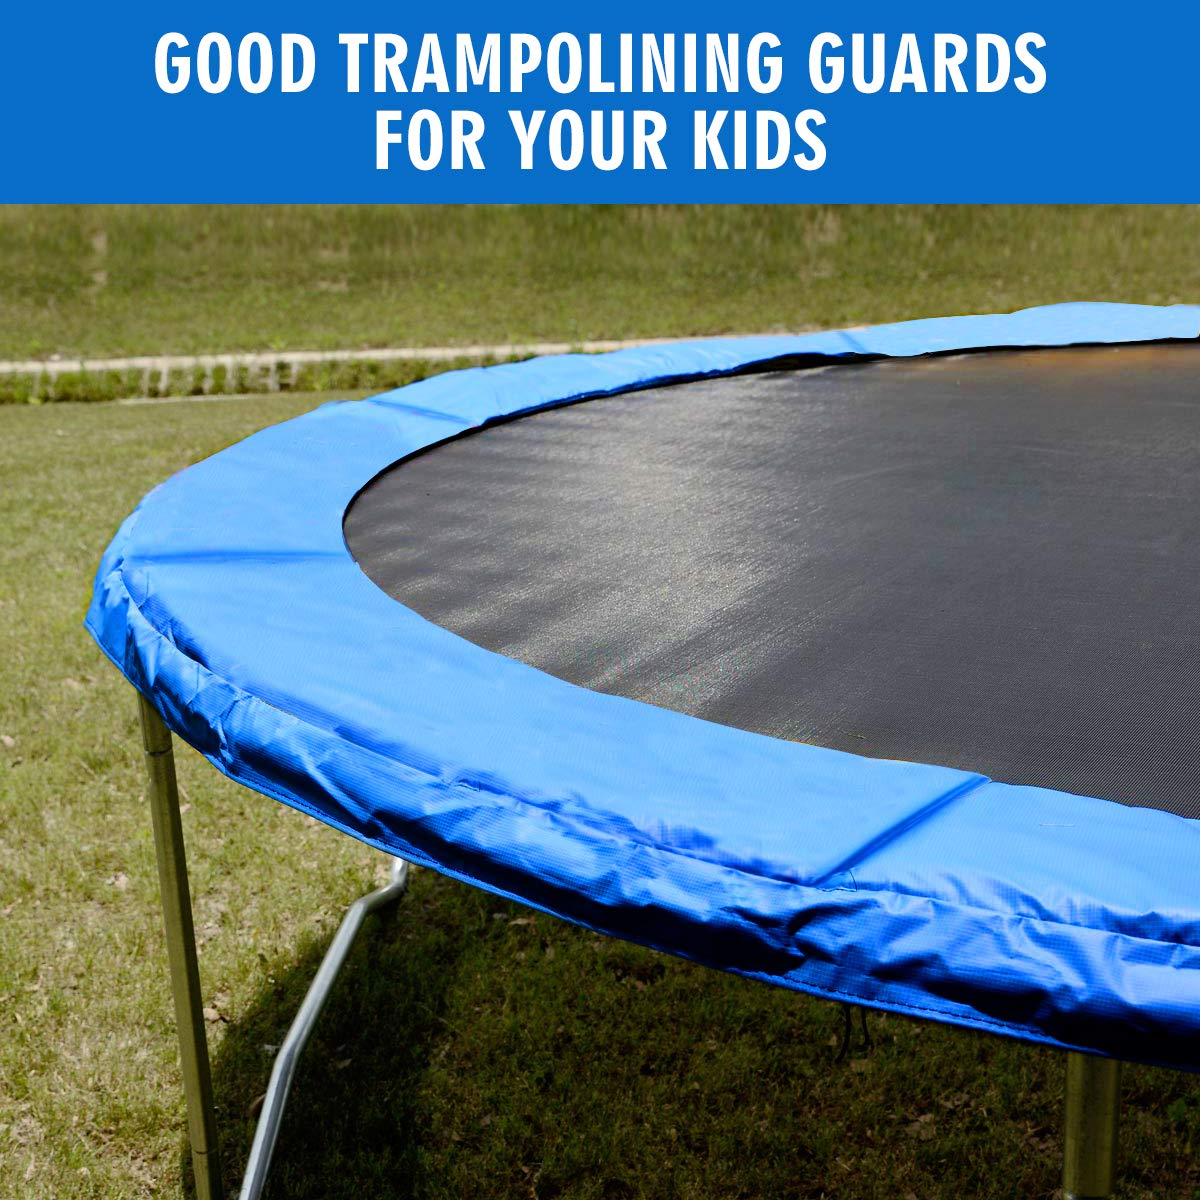 Giantex Trampoline Pad, Exercise Fitness Gymnastics Trampoline,Trampoline Pad Replacement Bounce Frame, Edge Cover Springs Protection Pad, Rebounder Trampoline (Blue, 14 ft) by Giantex (Image #5)